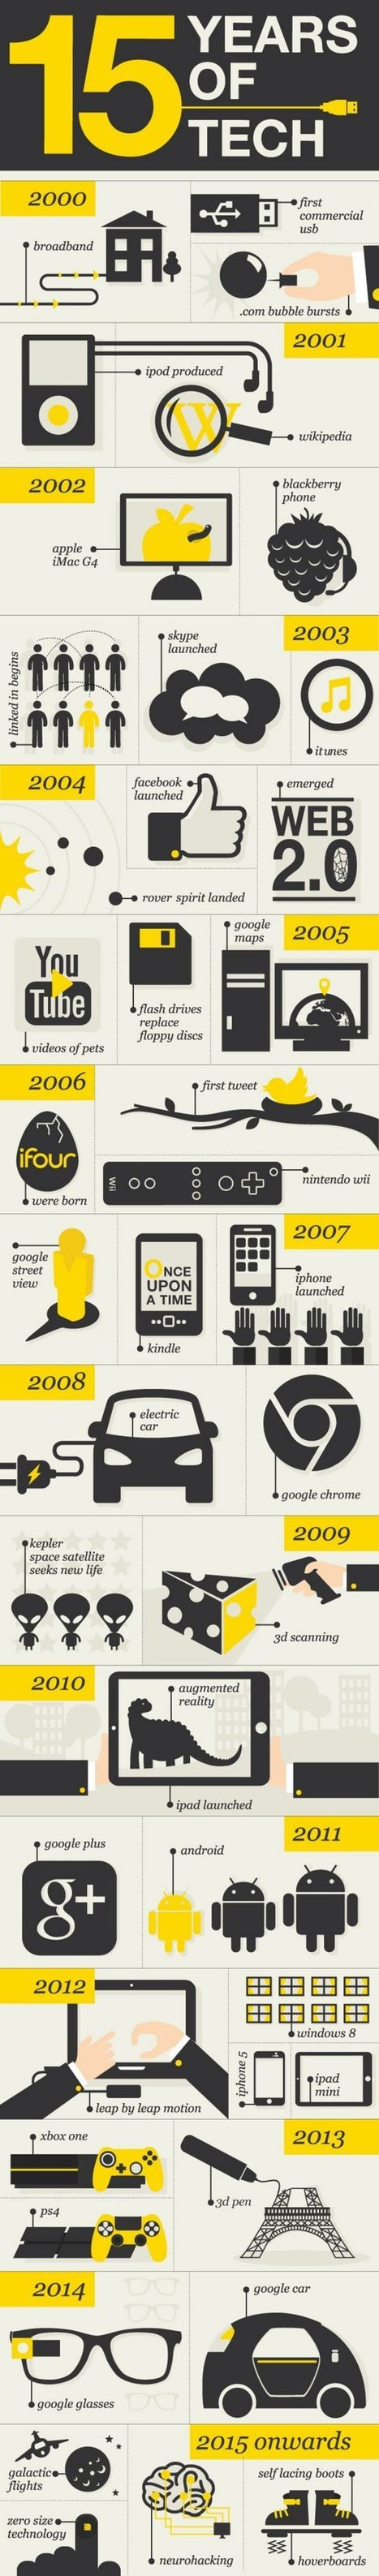 The Last 15 Years of Technological Advancement [Infographic] | Daily Infographic | Educational technology | Scoop.it